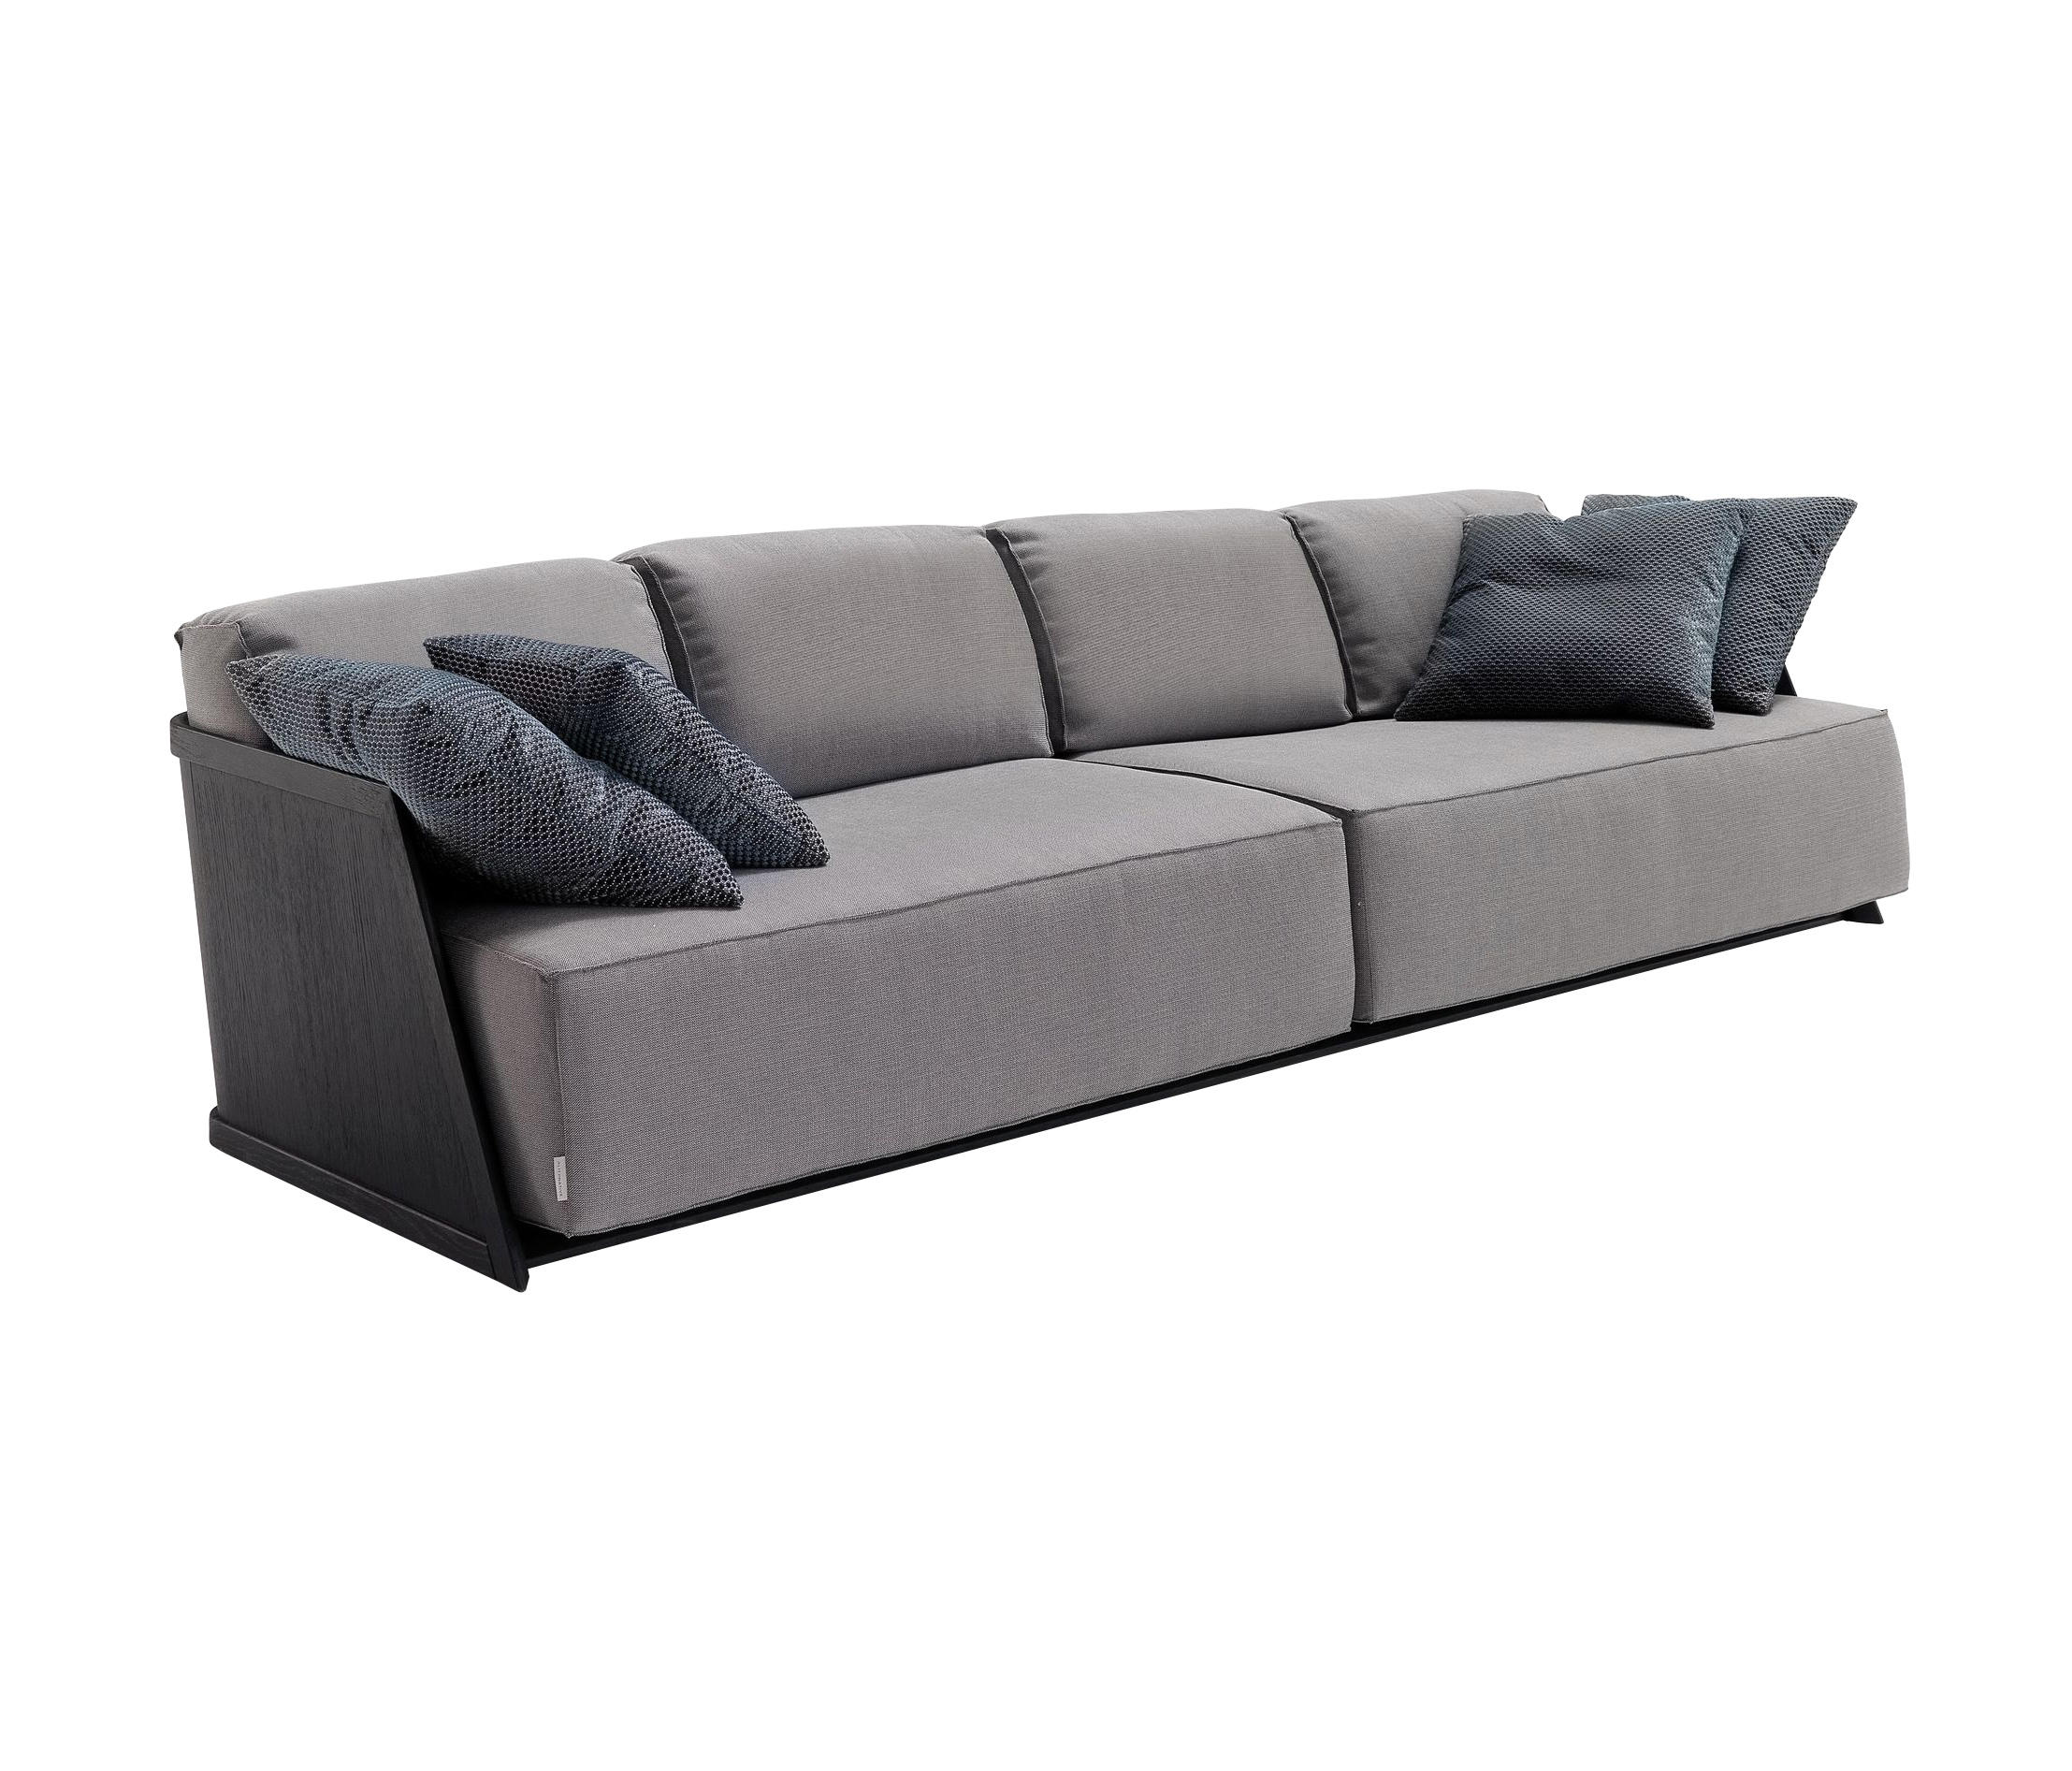 Peachy Boss Sofa Sofas From Mobilfresno Alternative Architonic Pdpeps Interior Chair Design Pdpepsorg